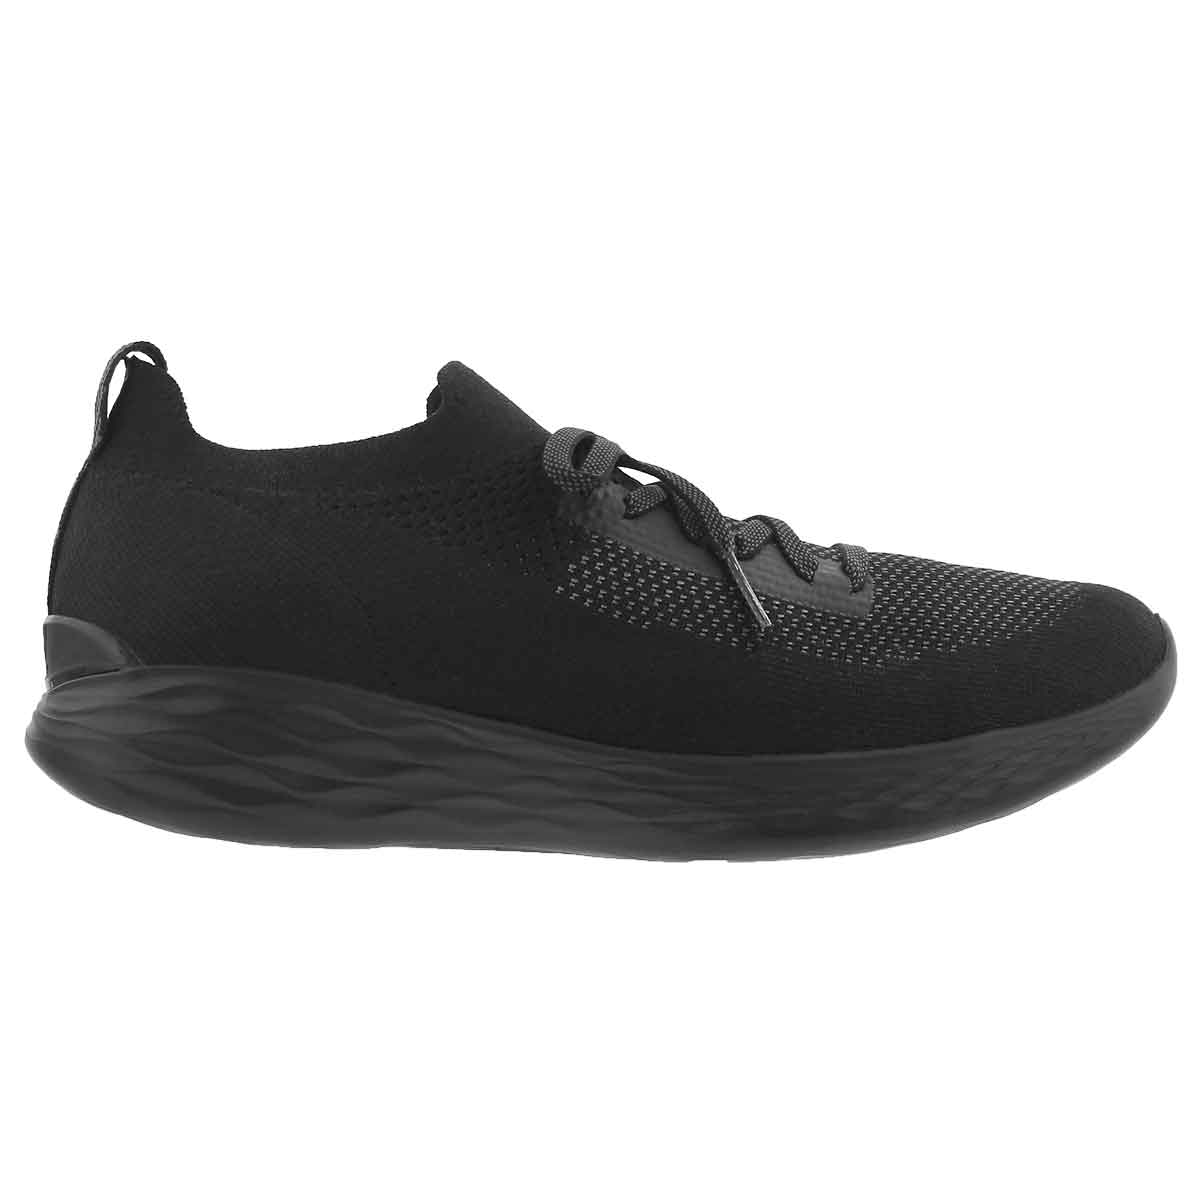 Lds You Shine blk/gry slip on sneaker